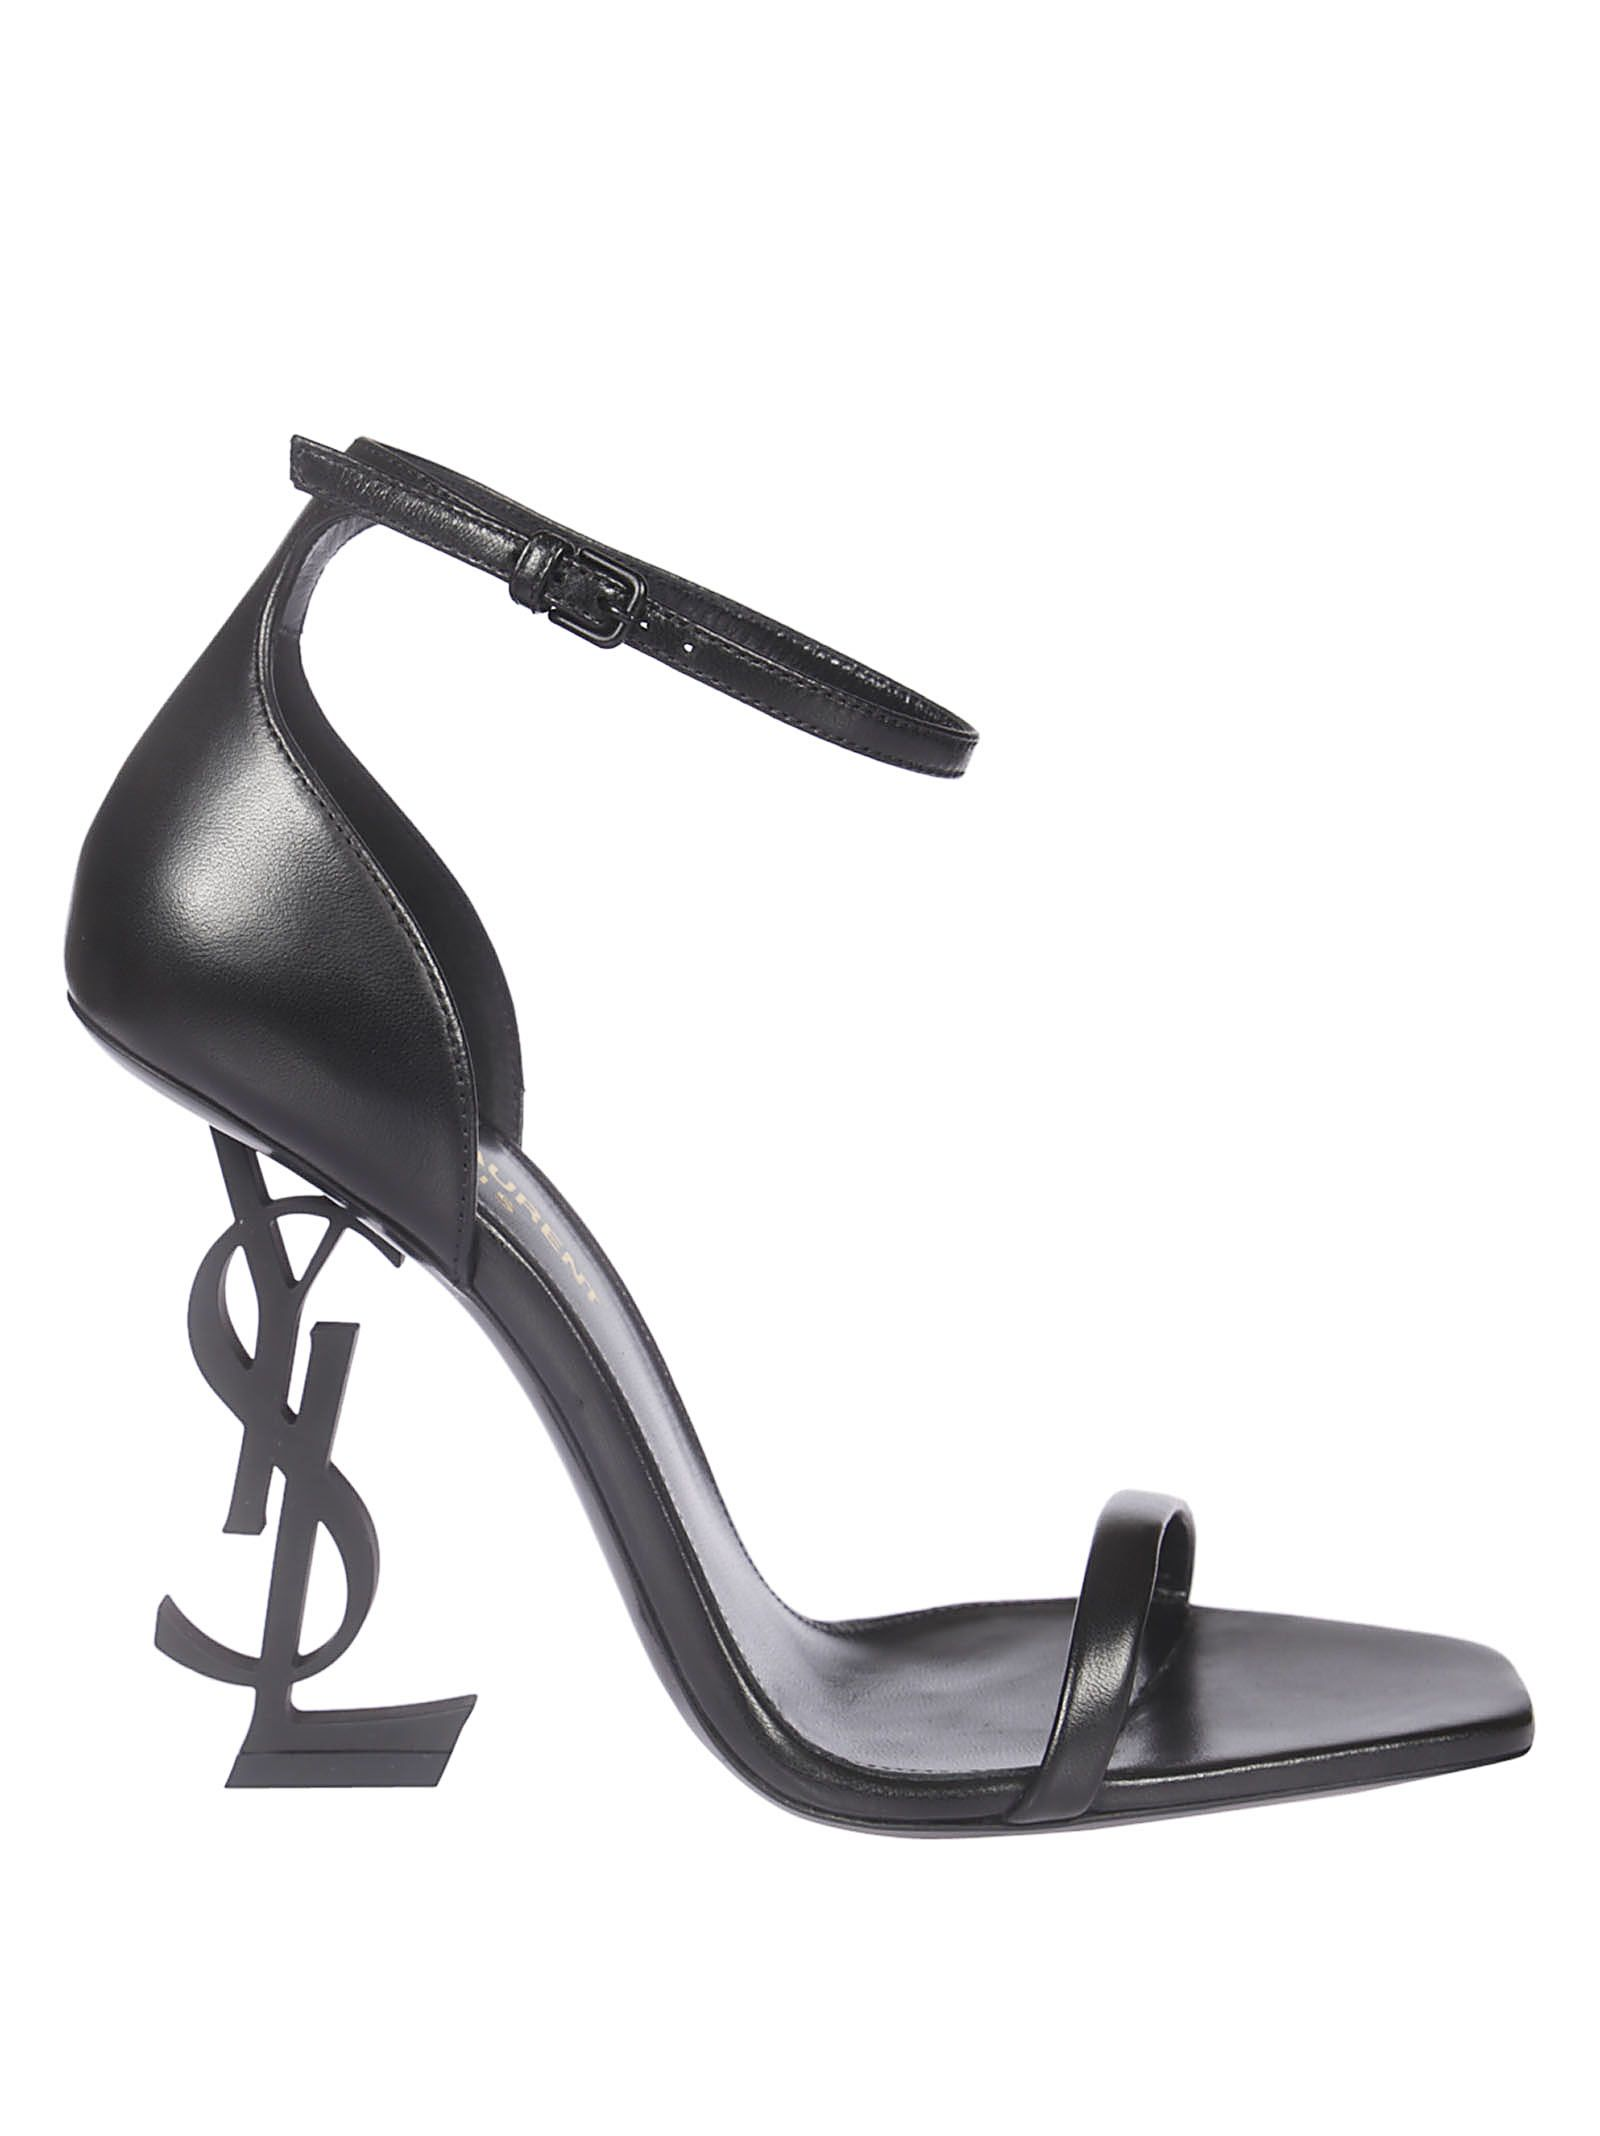 Saint Laurent High Heel Sandals